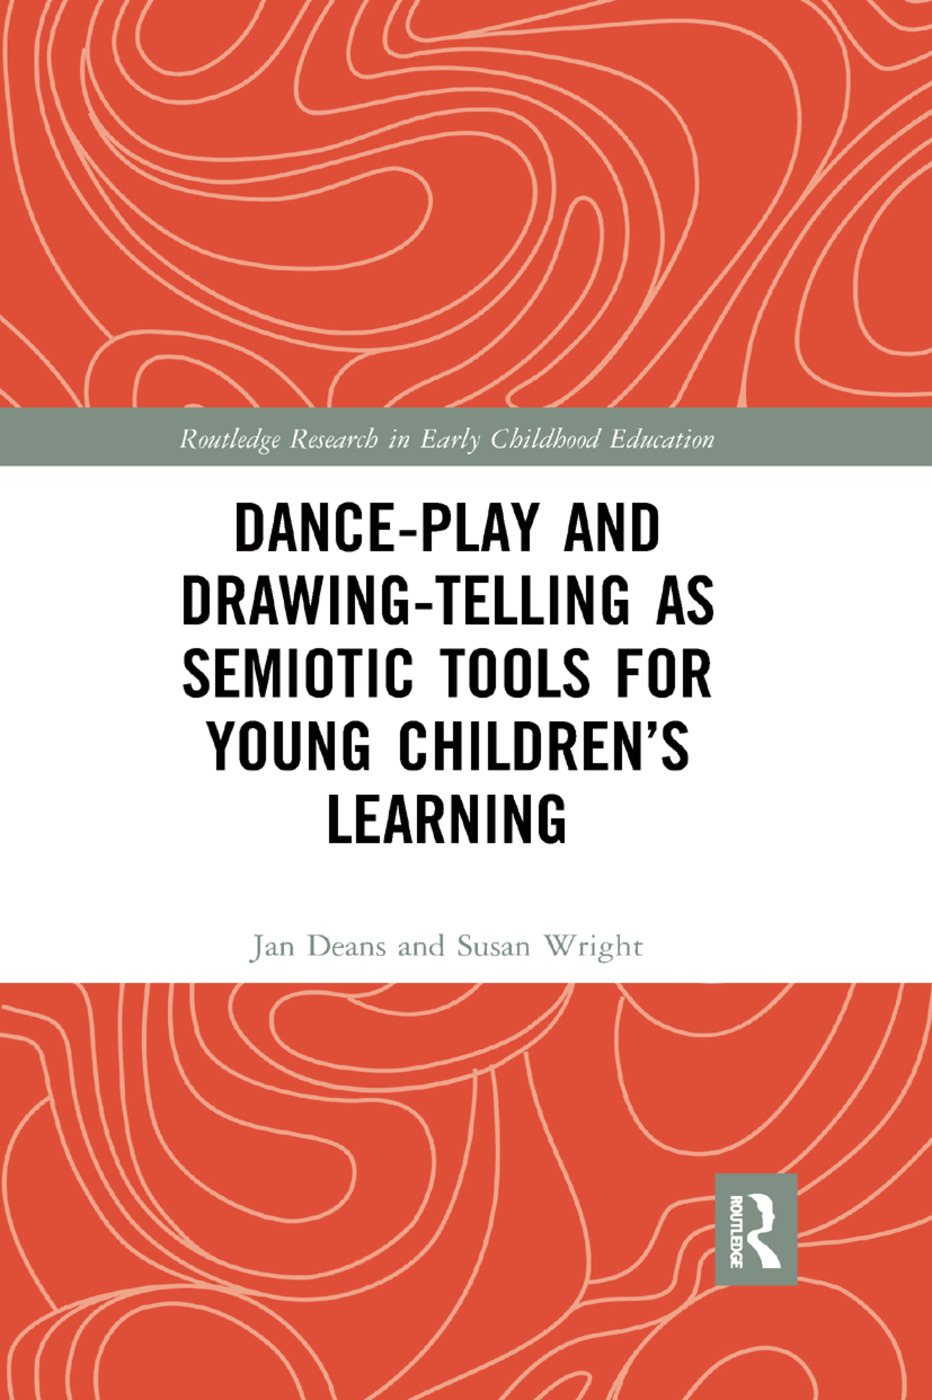 Dance-Play and Drawing-Telling as Semiotic Tools for Young Children's Learning book cover